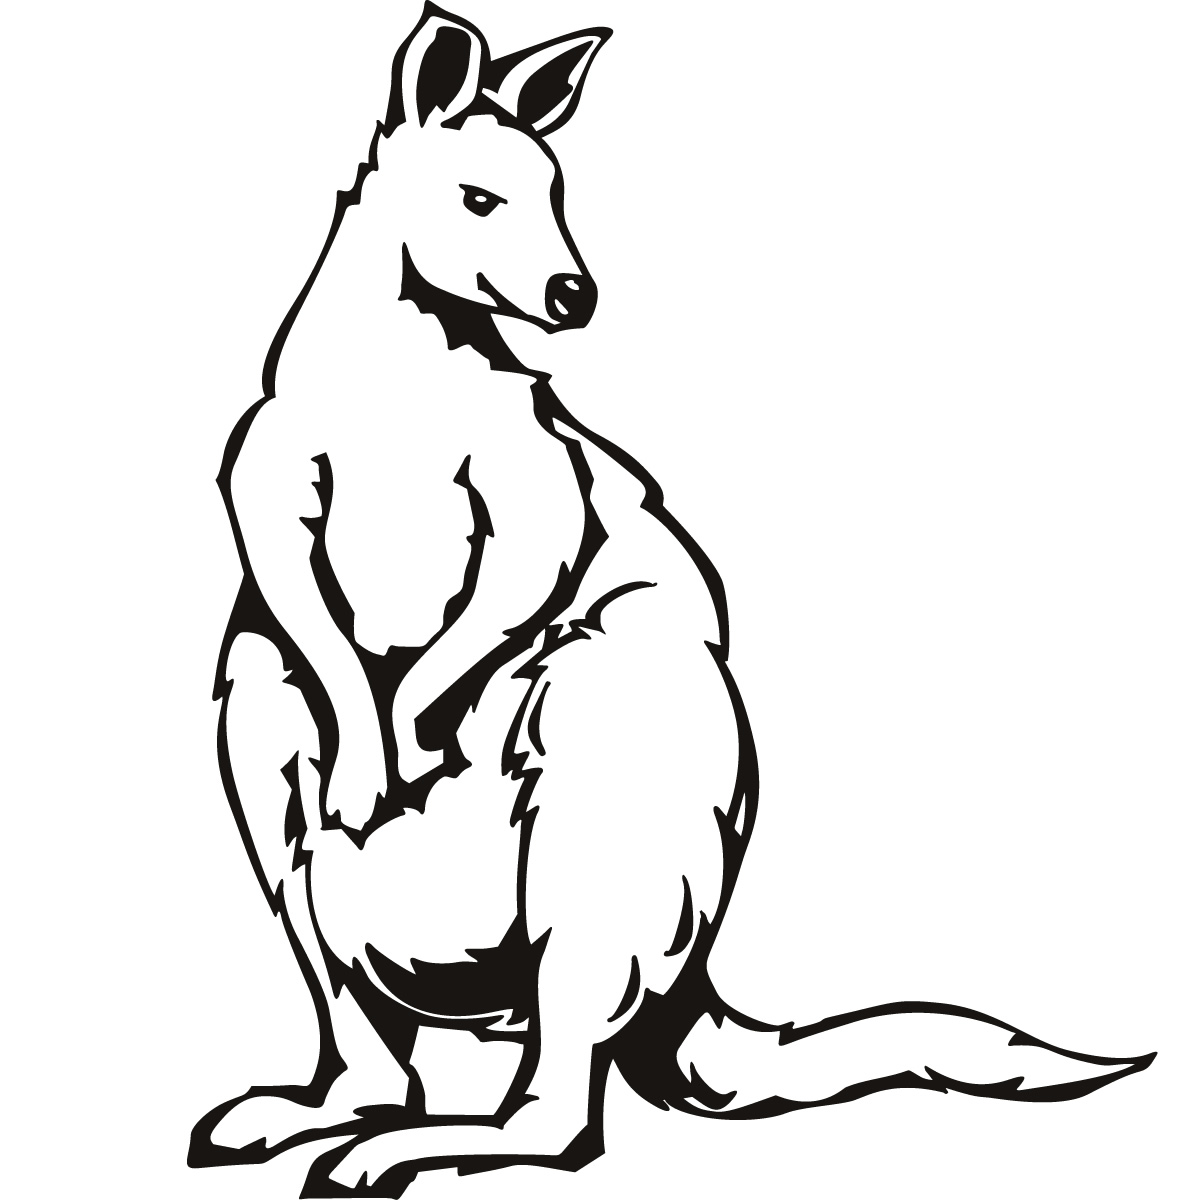 kangroo coloring pages - photo#22